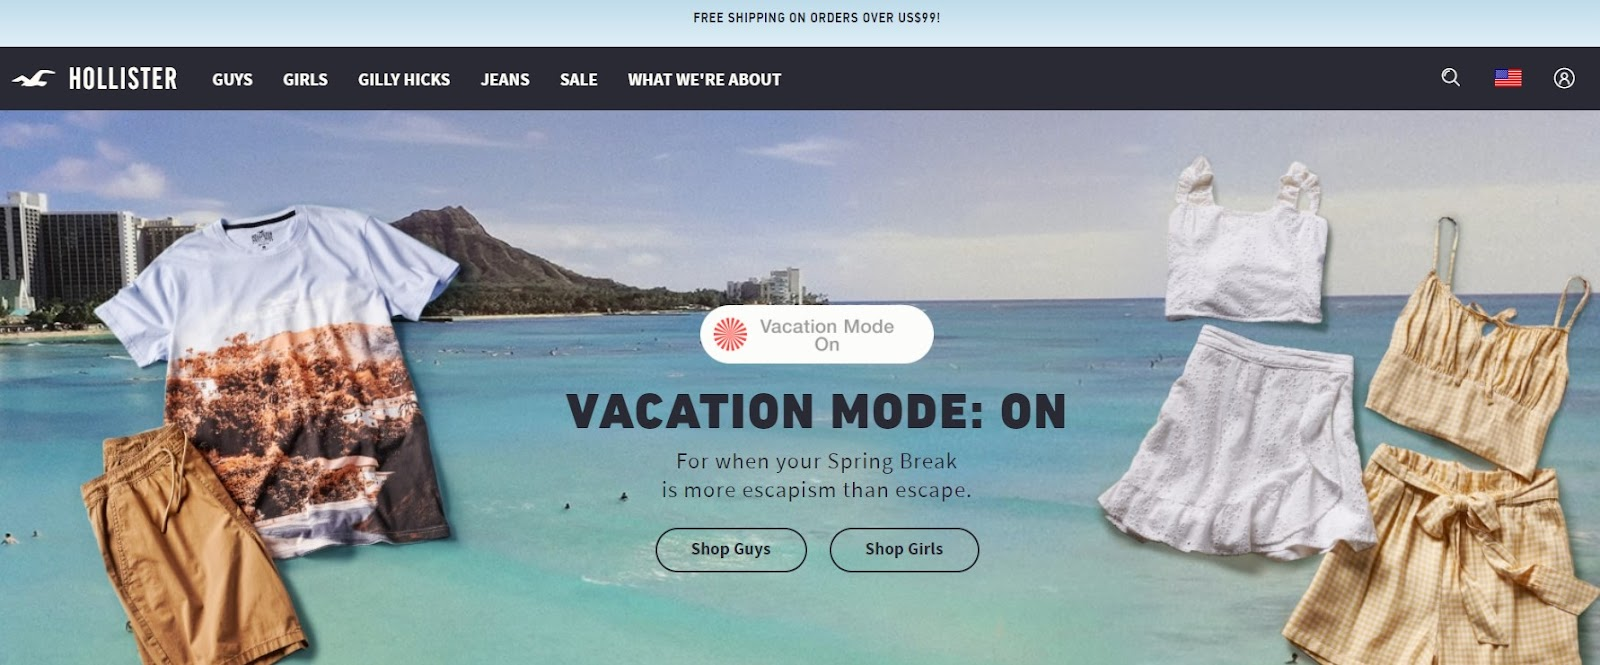 How to use my Hollister discount codes & Hollister promo codes to shop at Hollister Egypt, Hollister UAE & Hollister KSA and more.